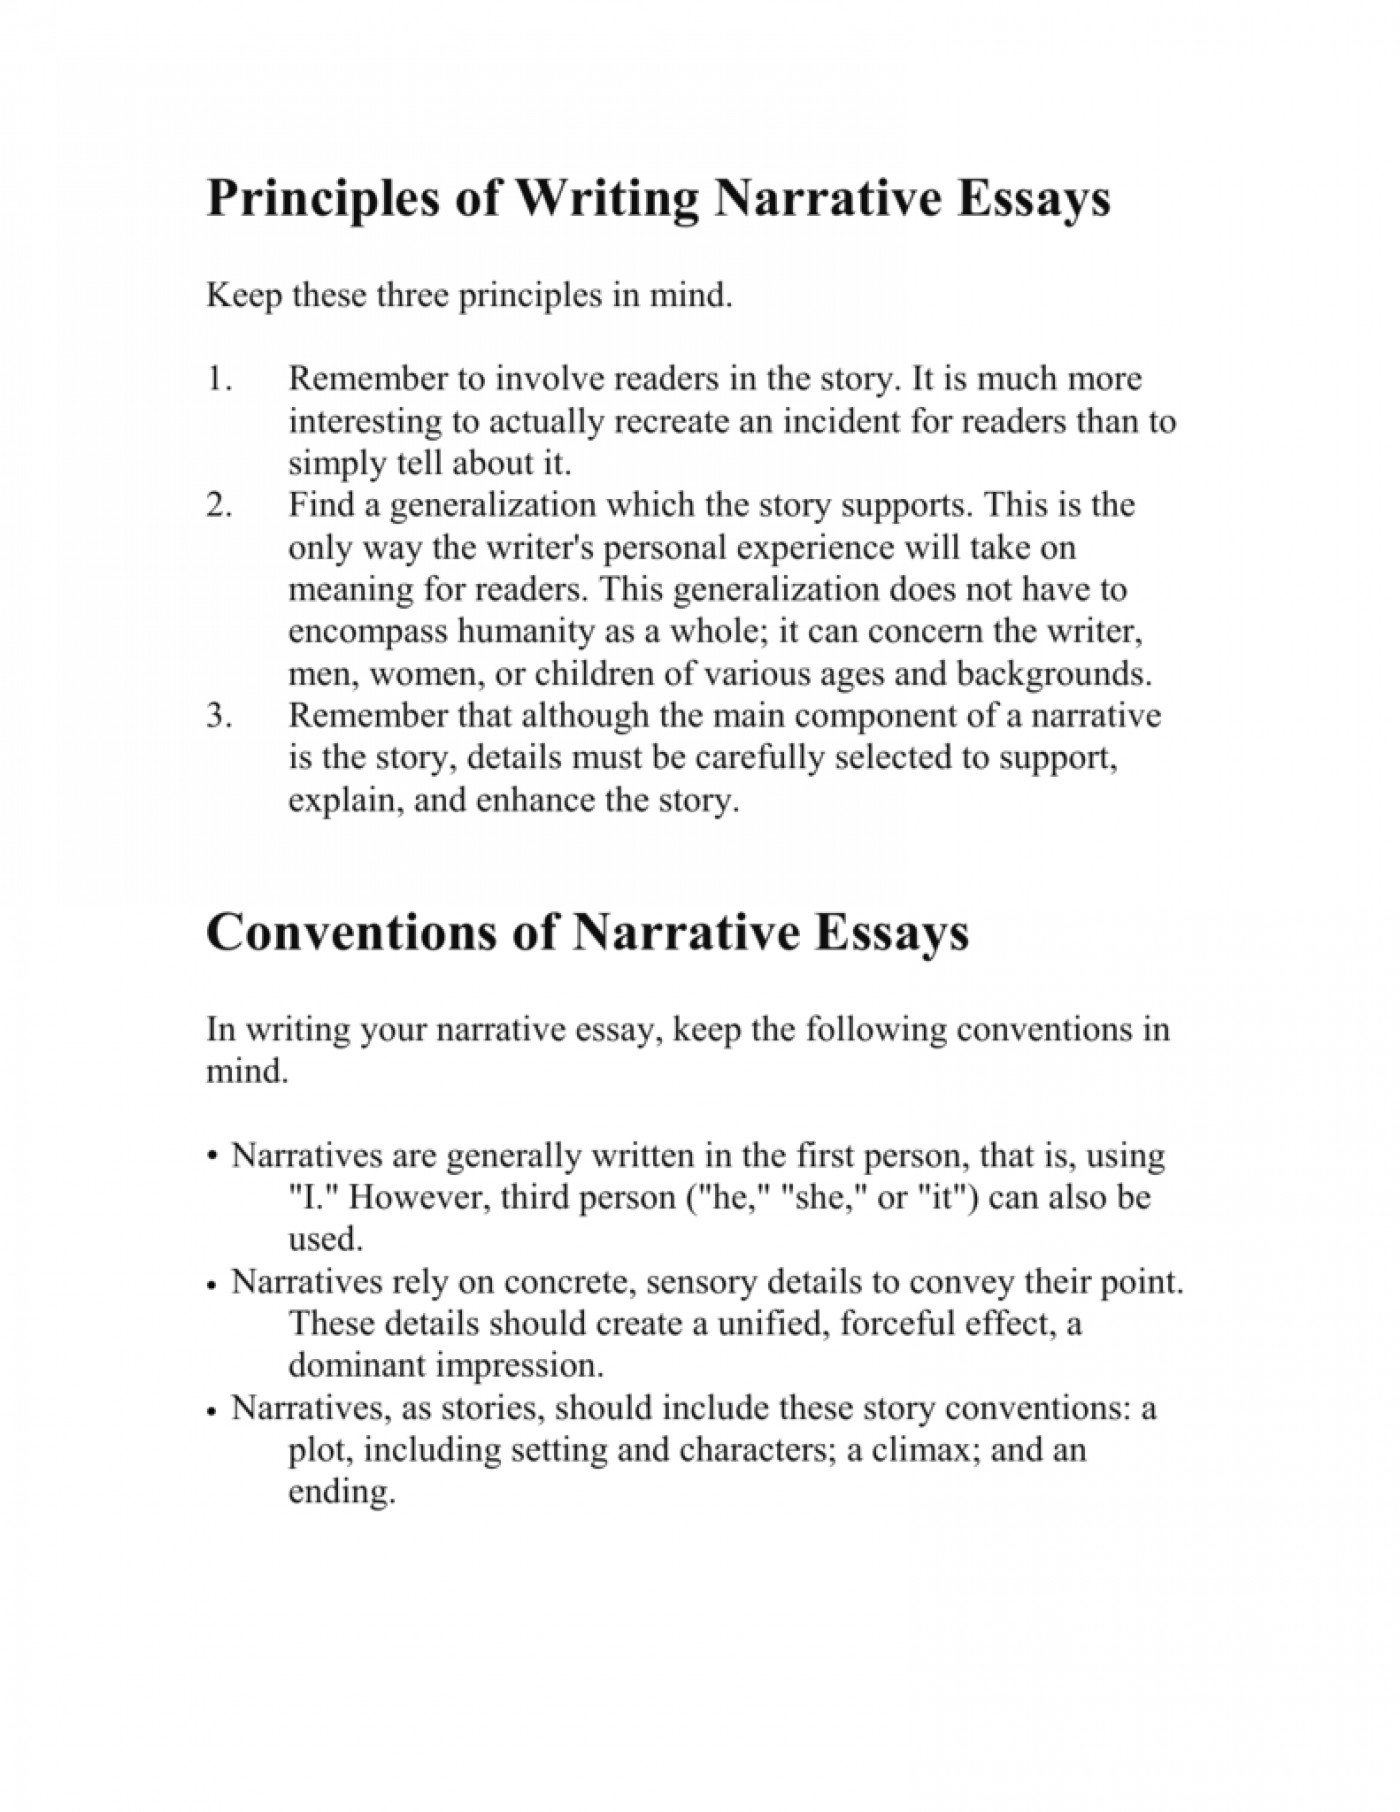 014 007210888 1 Essay Example Writing Amazing A Narrative About Being Judged Quizlet Powerpoint 1400